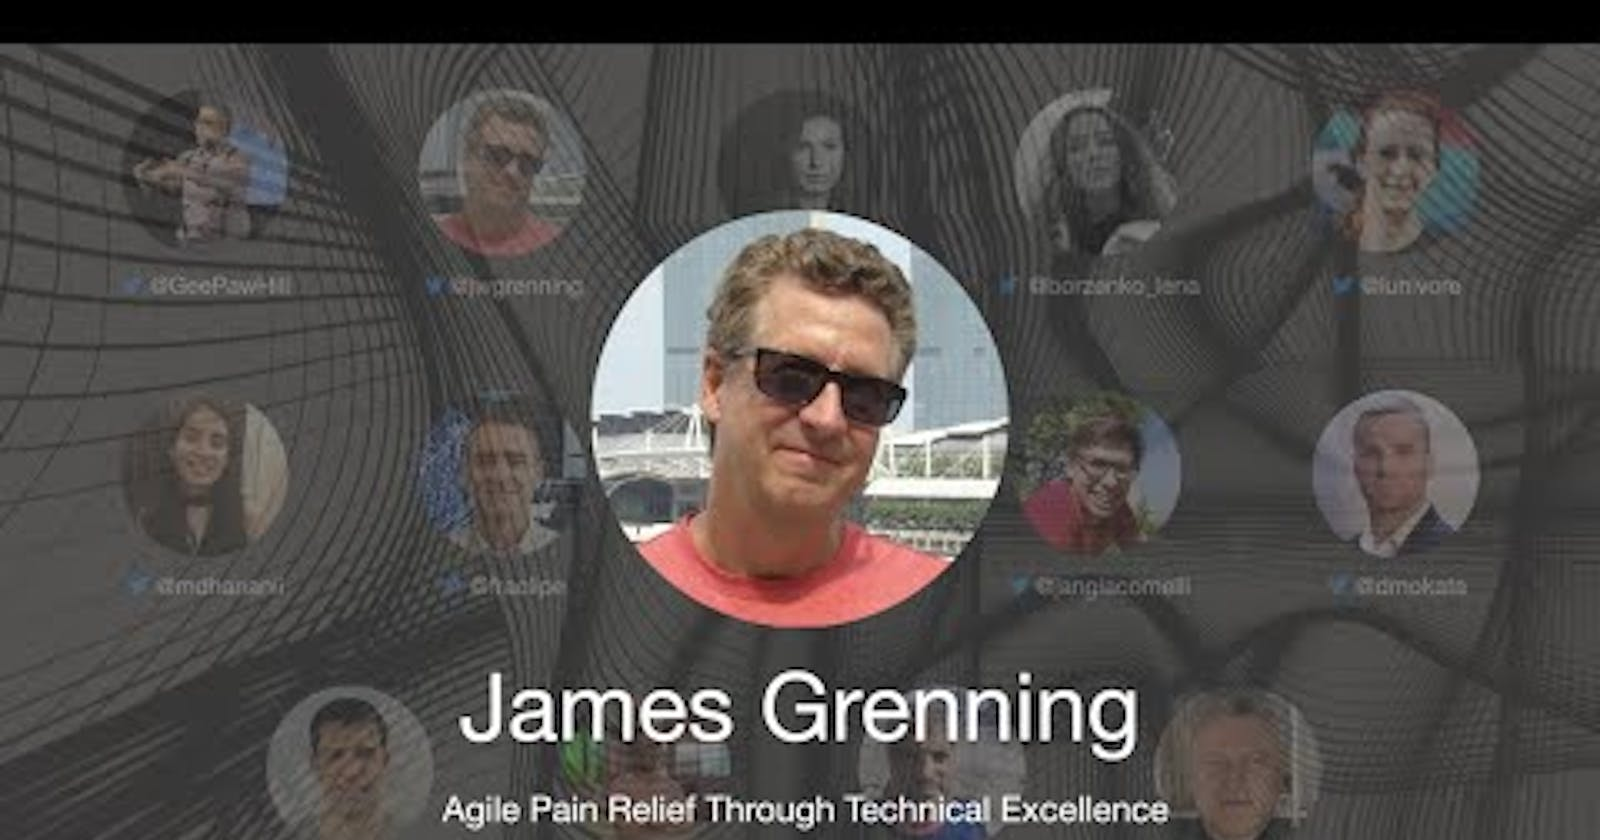 TDD Conference 2021 -  Agile Pain Relief Through Technical Excellence - James Grenning